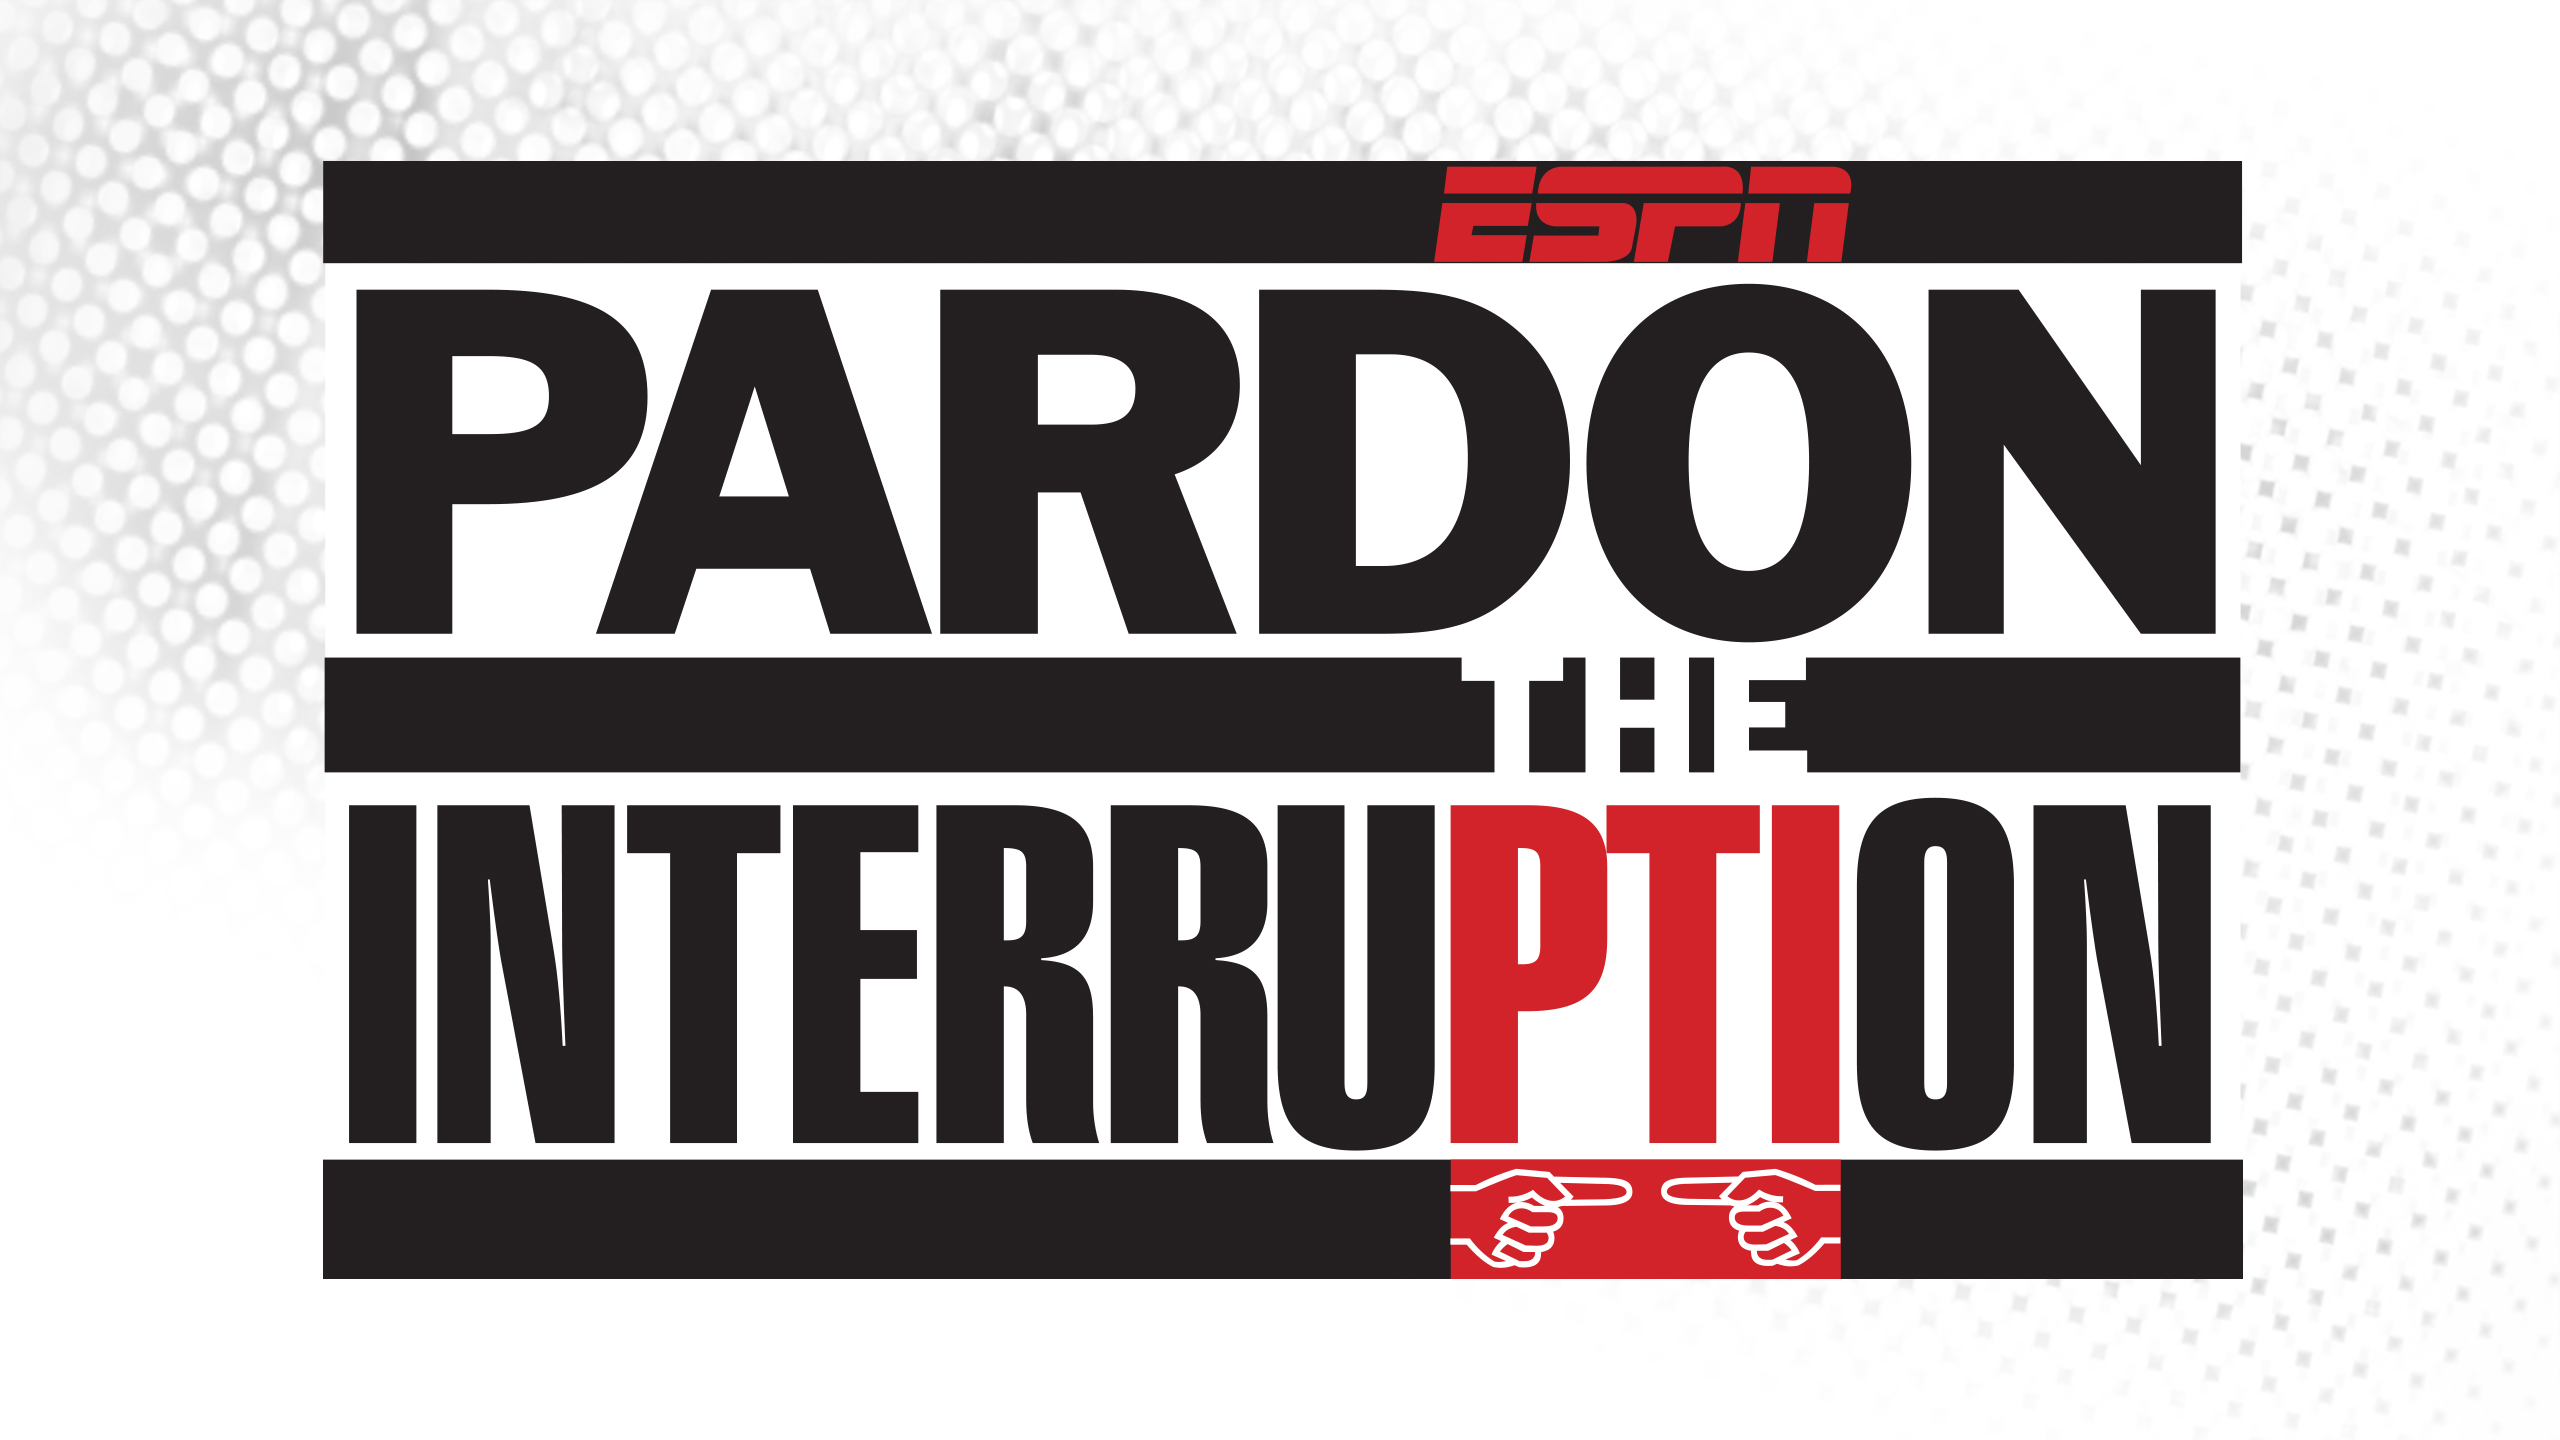 Thu, 11/15 - Pardon The Interruption